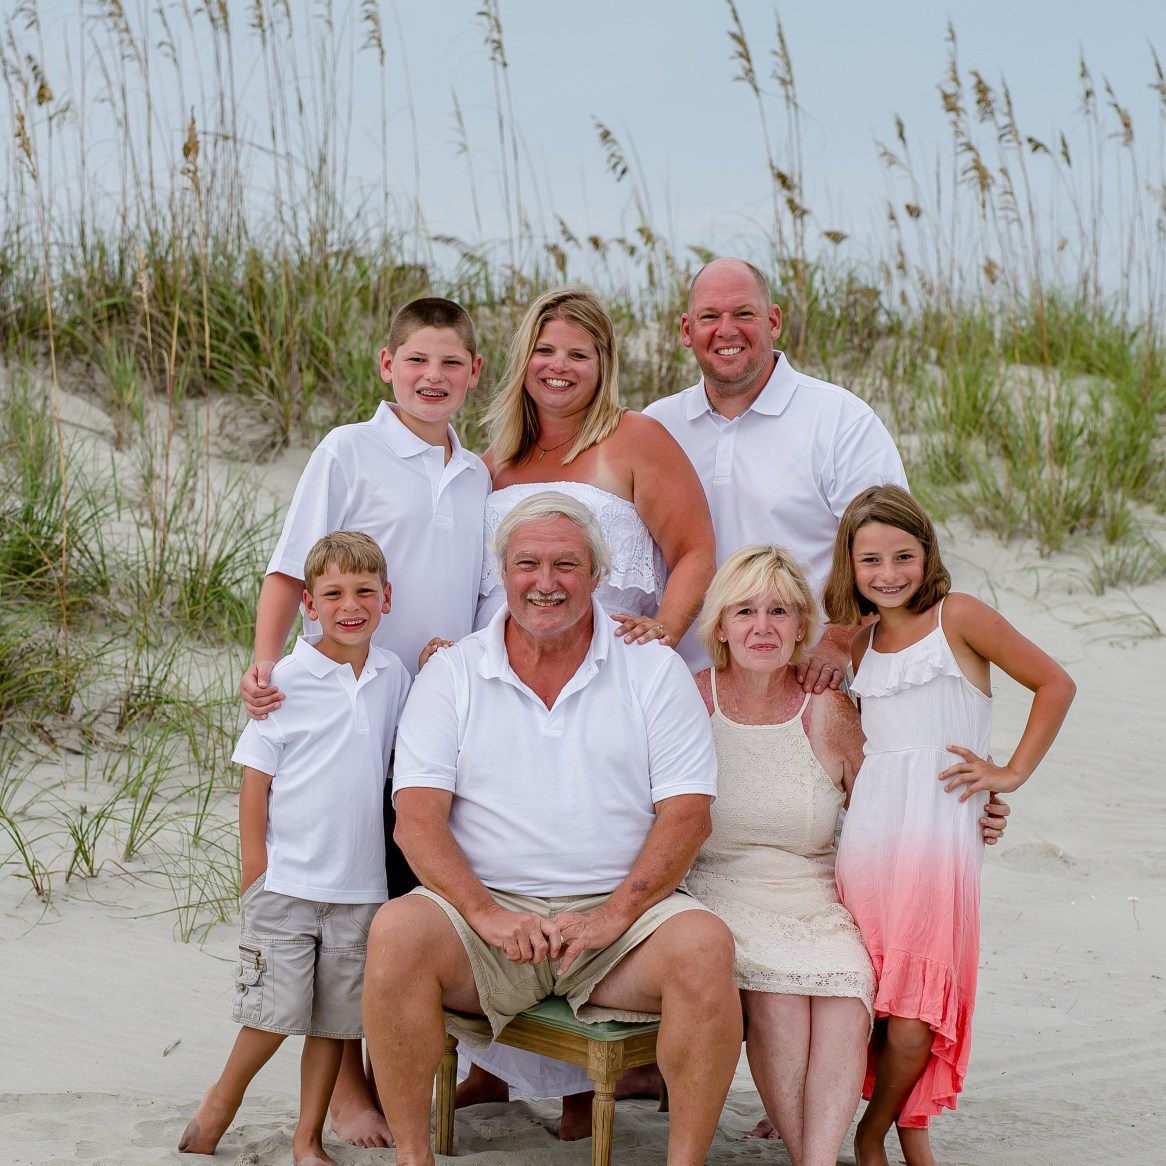 family beach portraits in the sand dunes